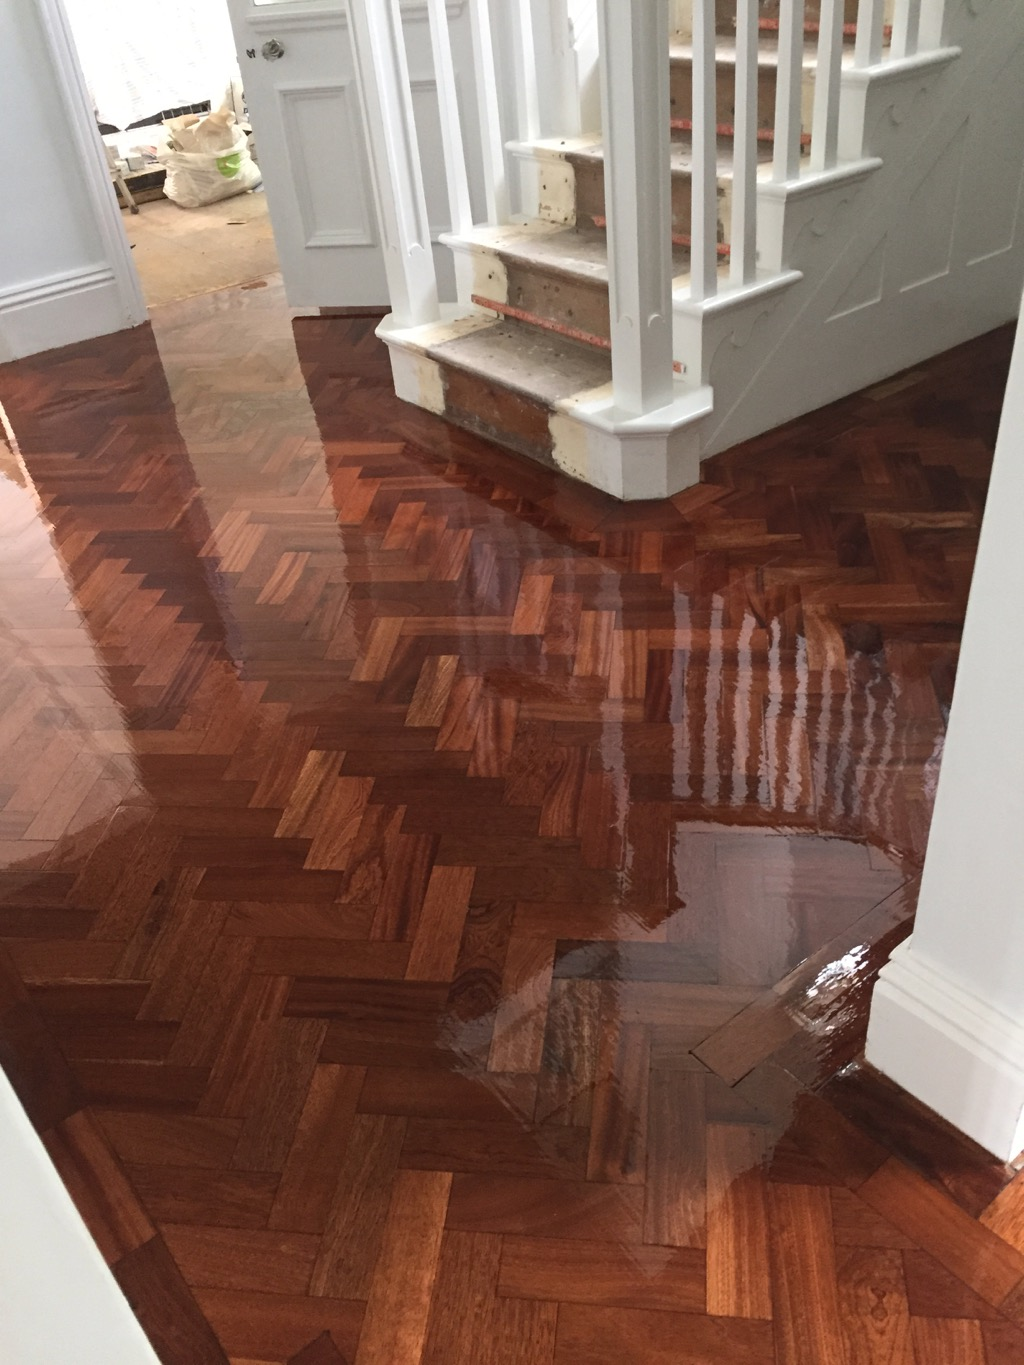 Block / Parquet Hardwood floor Sanding and Sealing by Floorcare Services. Block Parquet flooring Sanded and Sealed with 1 coat of Floortech Products ...